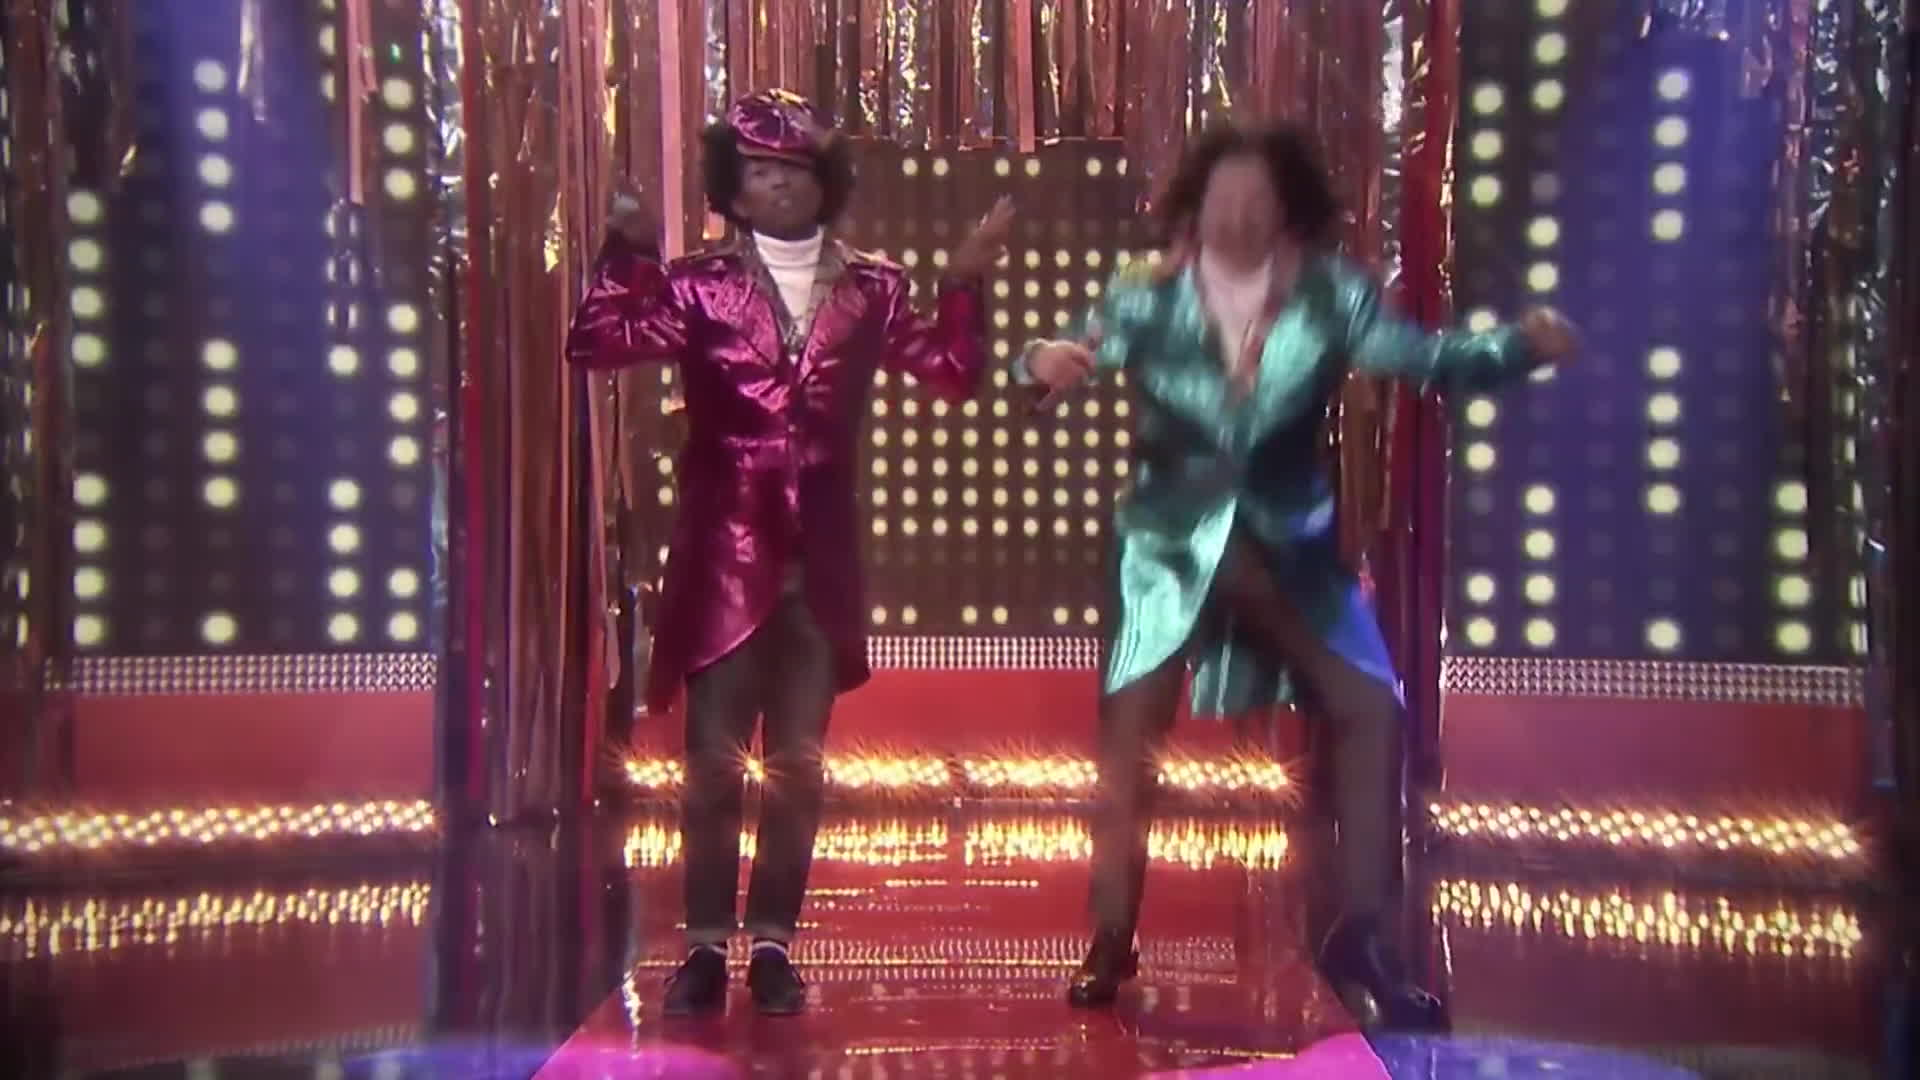 Jimmy & Pharrell Dance GIFs